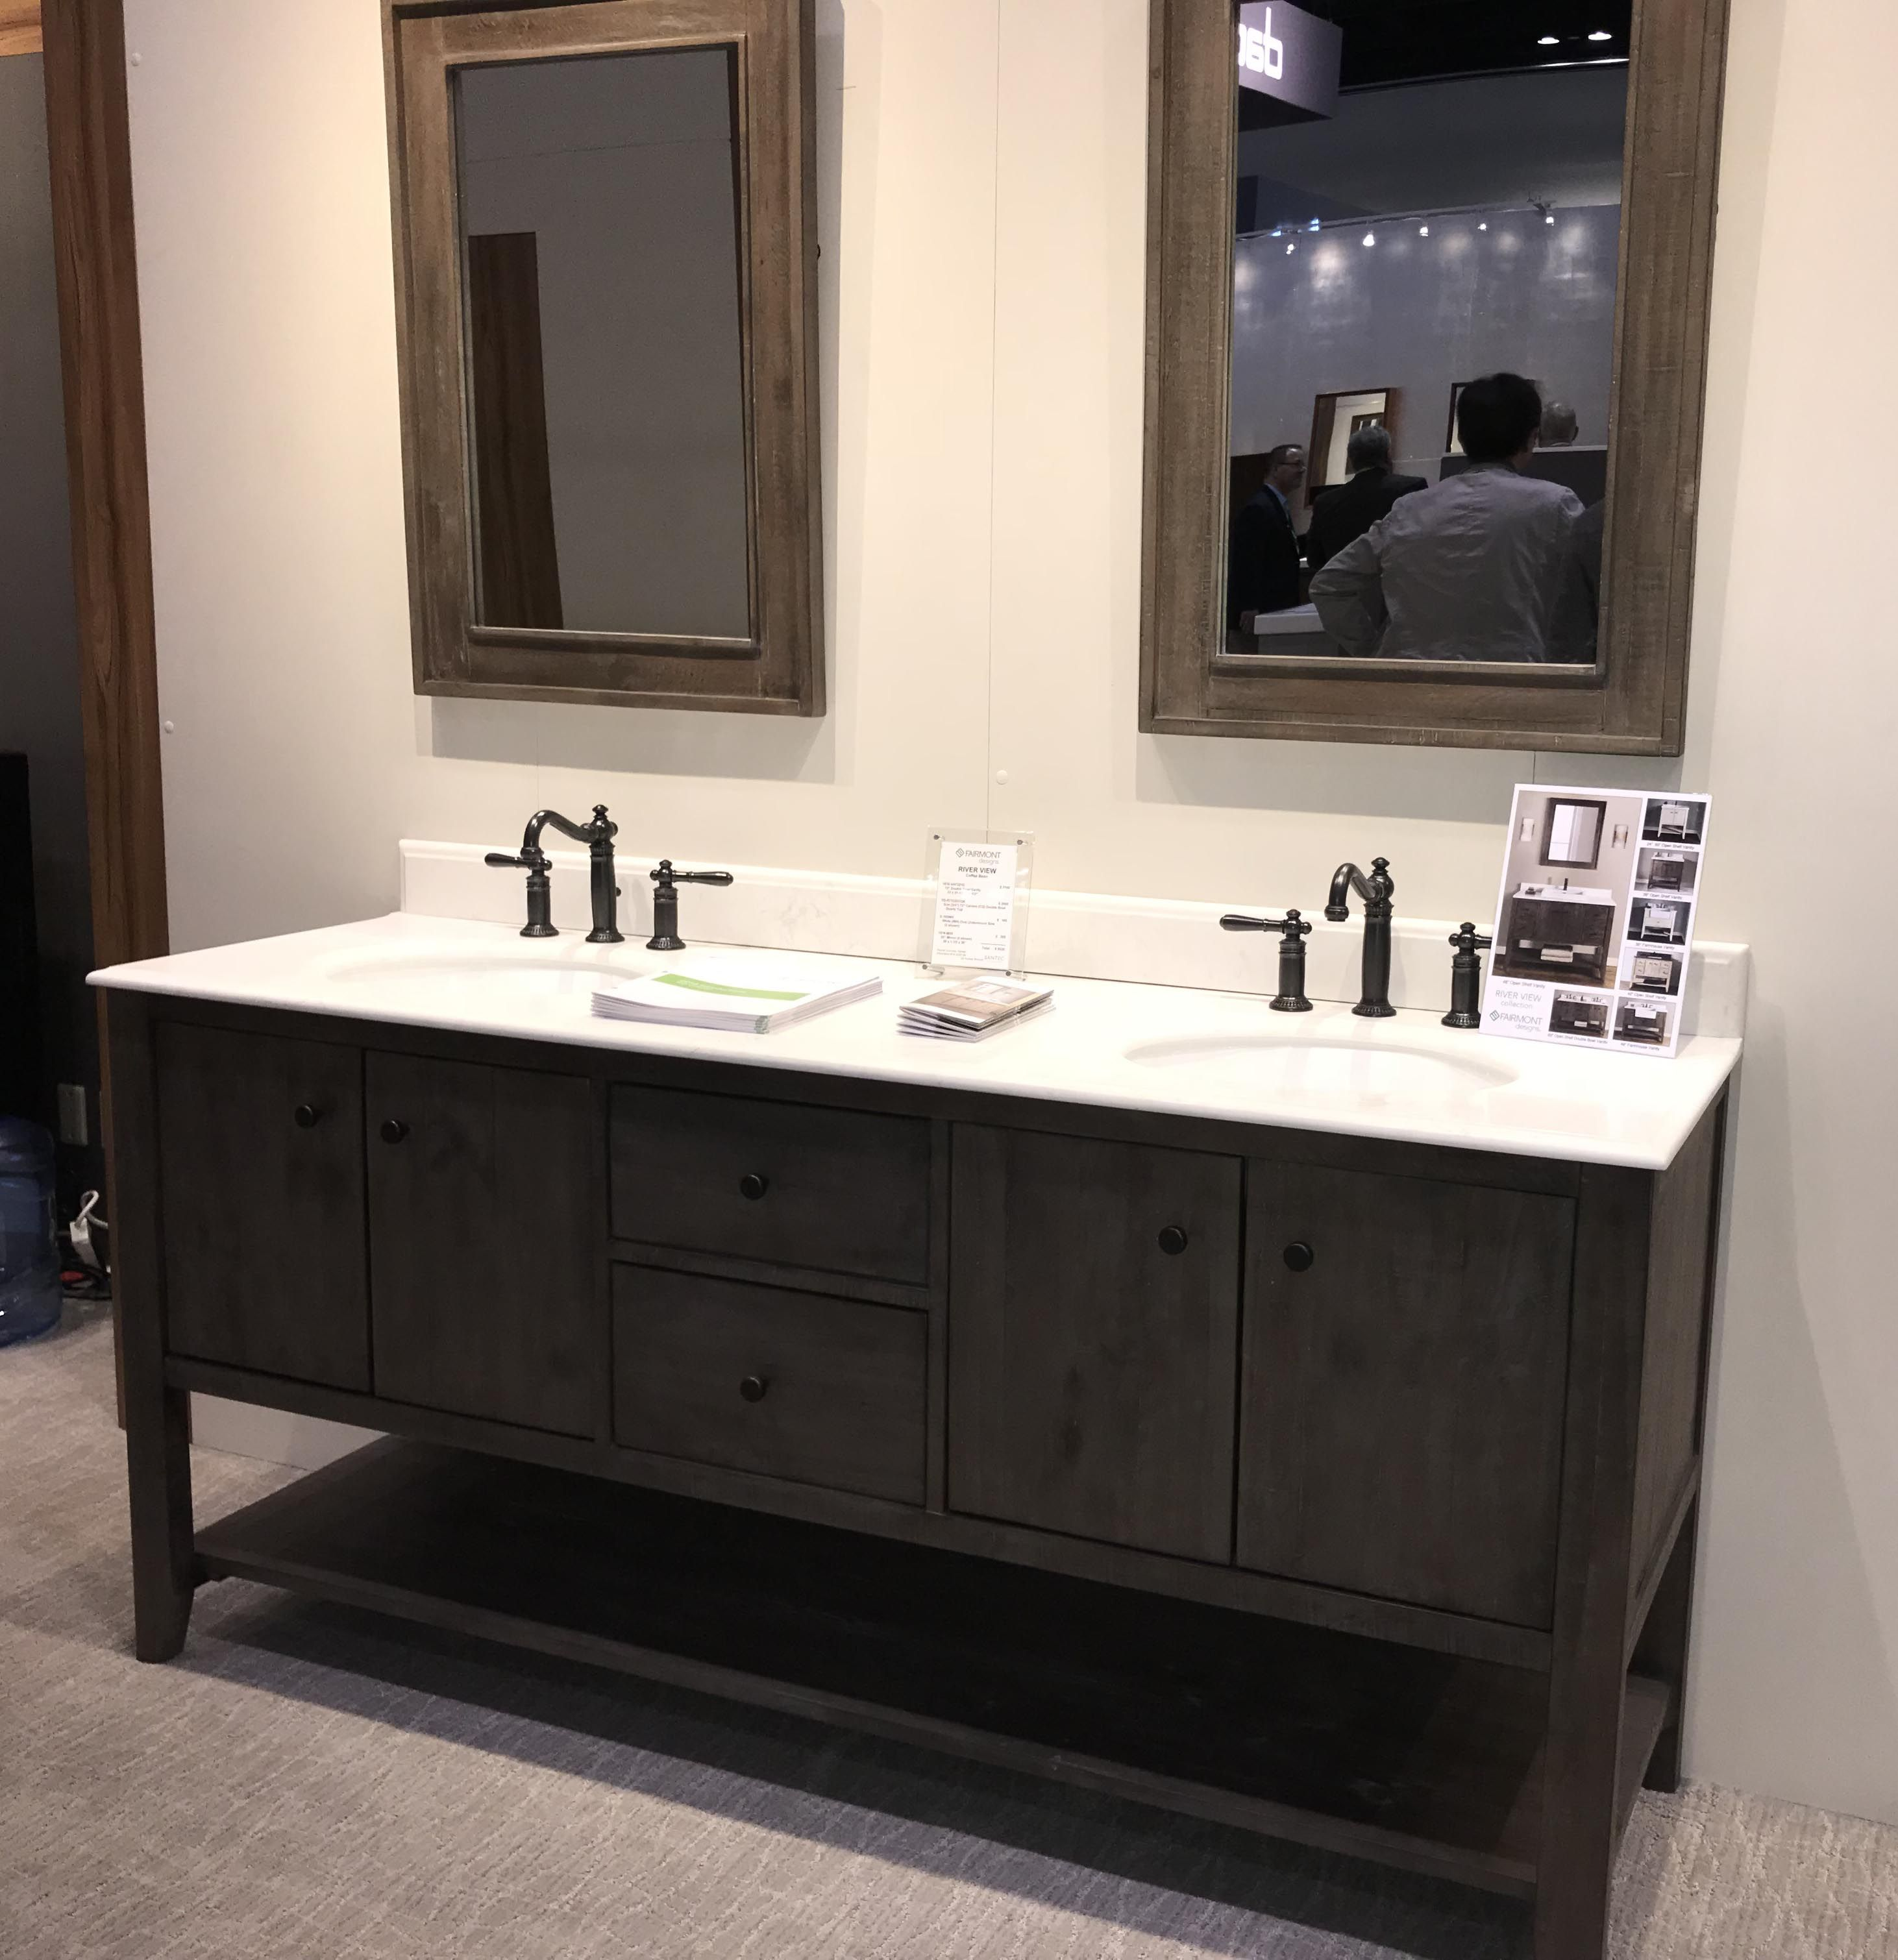 River View 72 Double Bowl Vanity Fdbath Kbis2018 Doublebowl